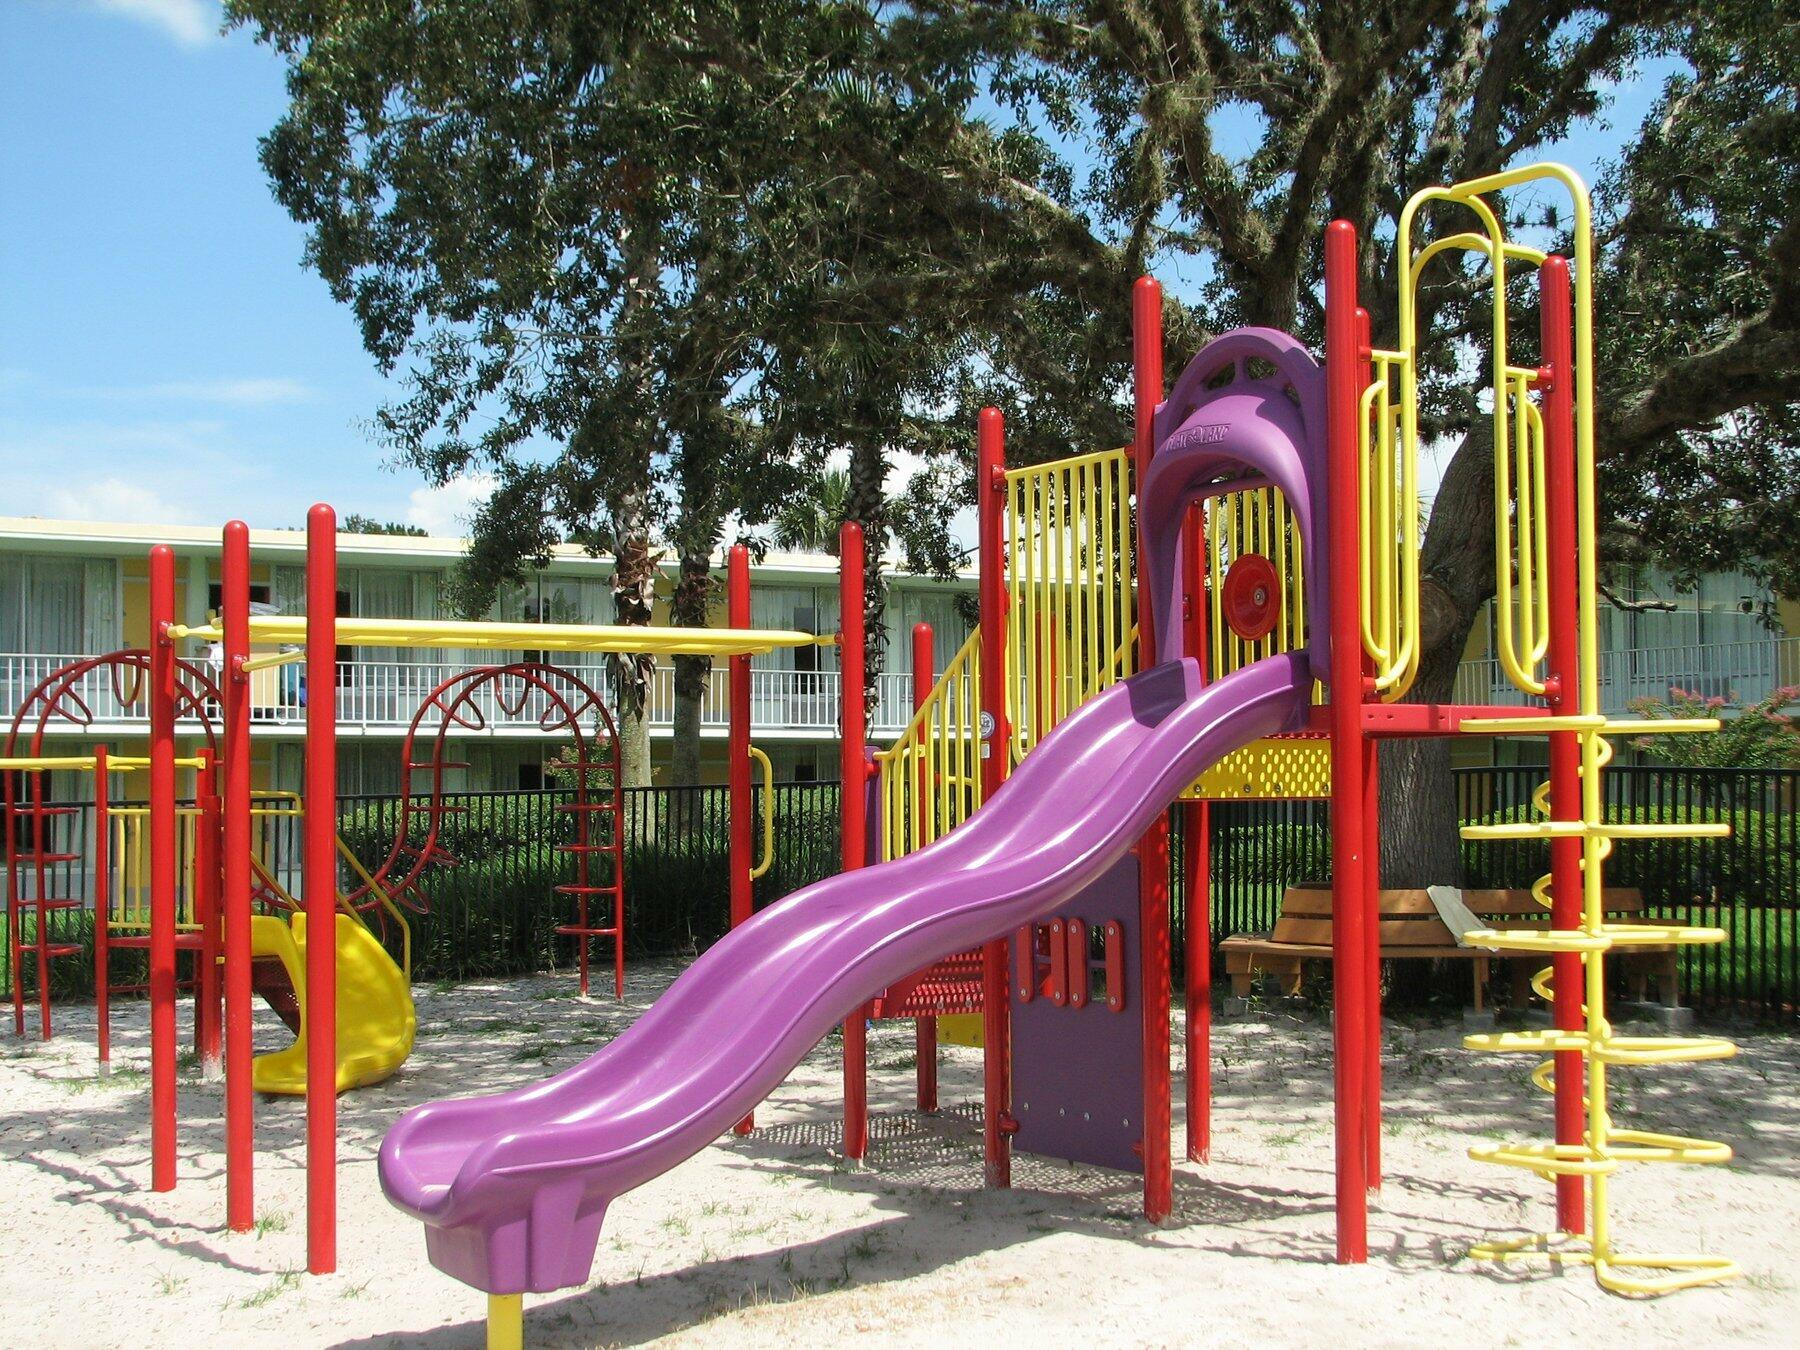 Brightly colored playground